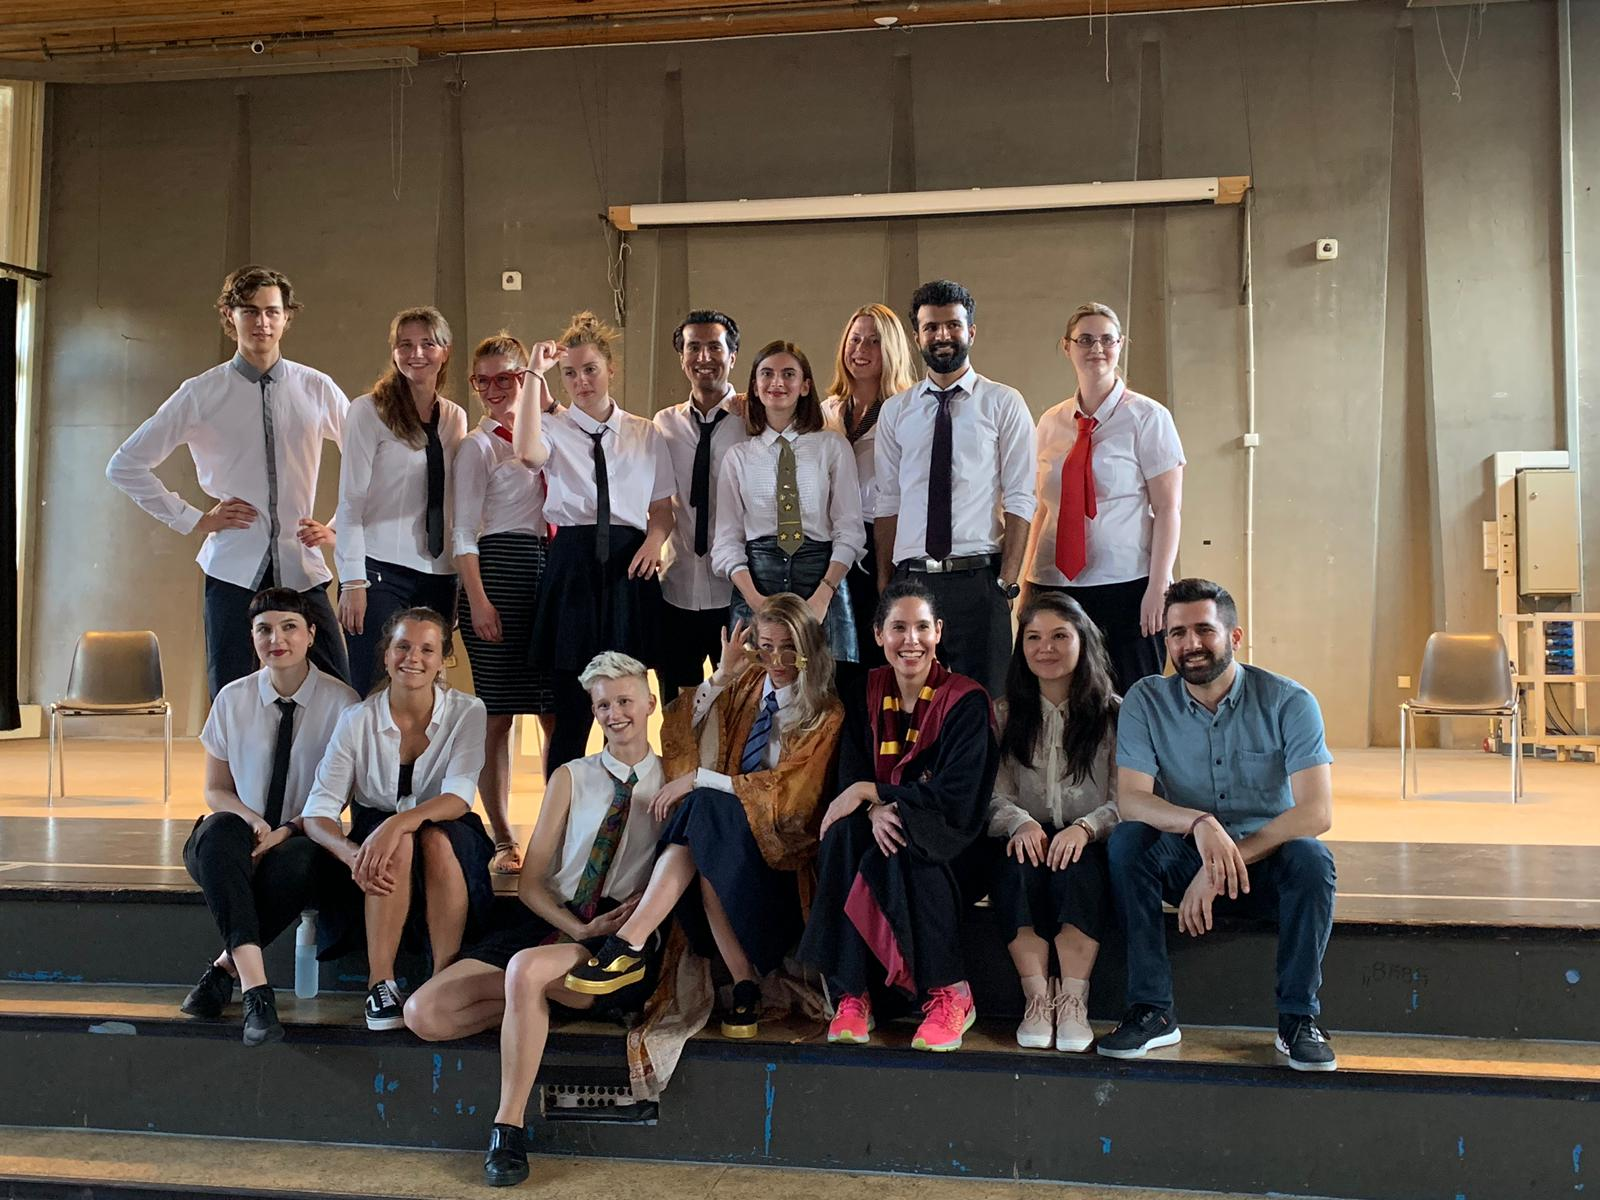 """From the rehearsal of the show """"the magic school"""". A group of people pose for the picture. Most of them wear a white shirt and tie"""